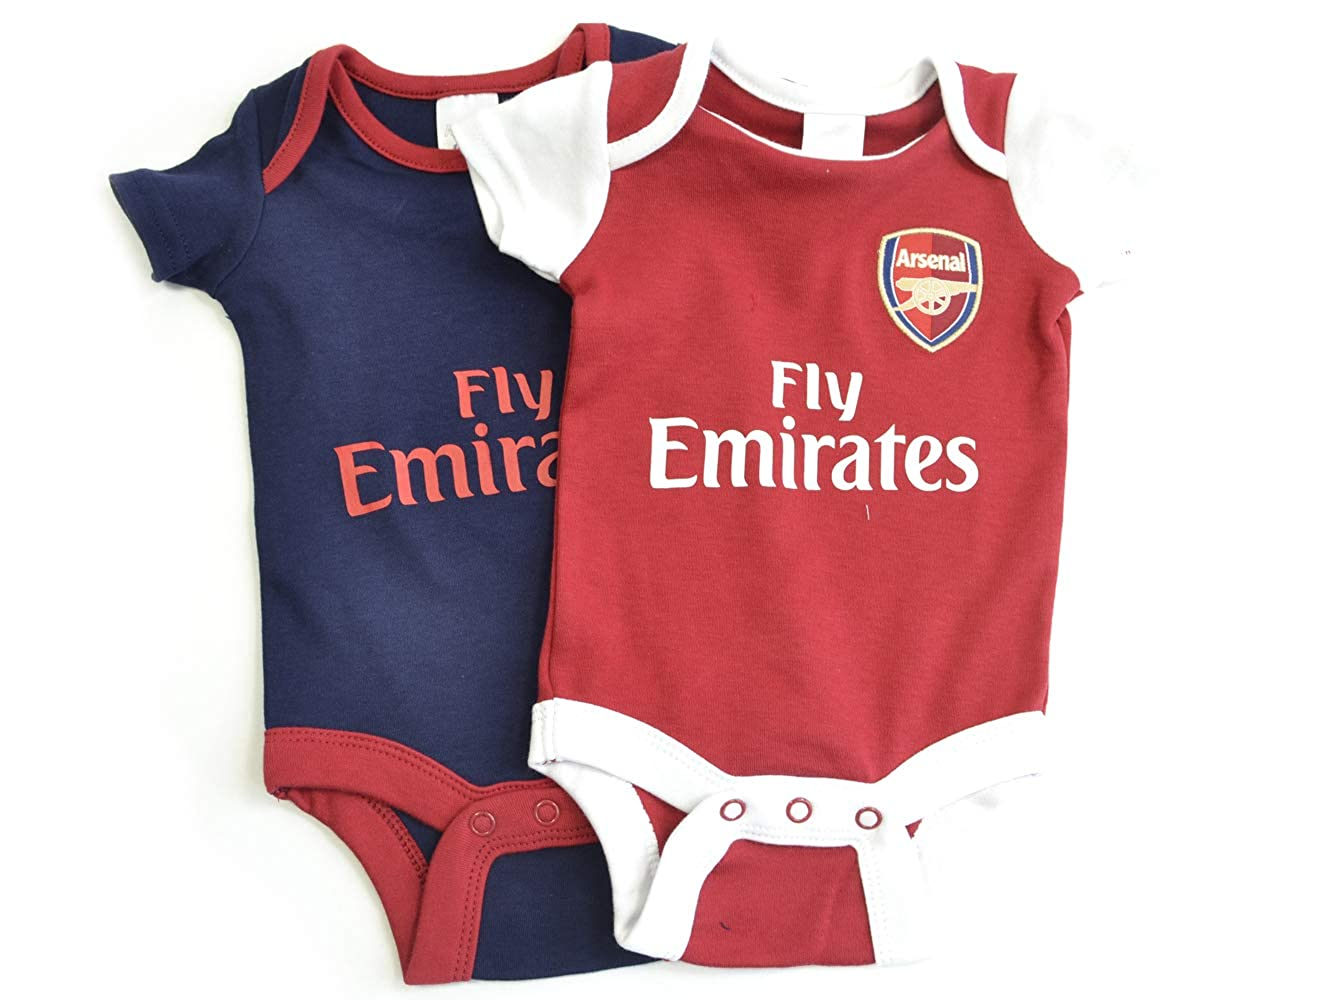 2f0f8b3b8 Arsenal Baby KIT Body Suits Baby Vests 2 Pack Home   Away New Season KIT  2018 19  Amazon.co.uk  Clothing